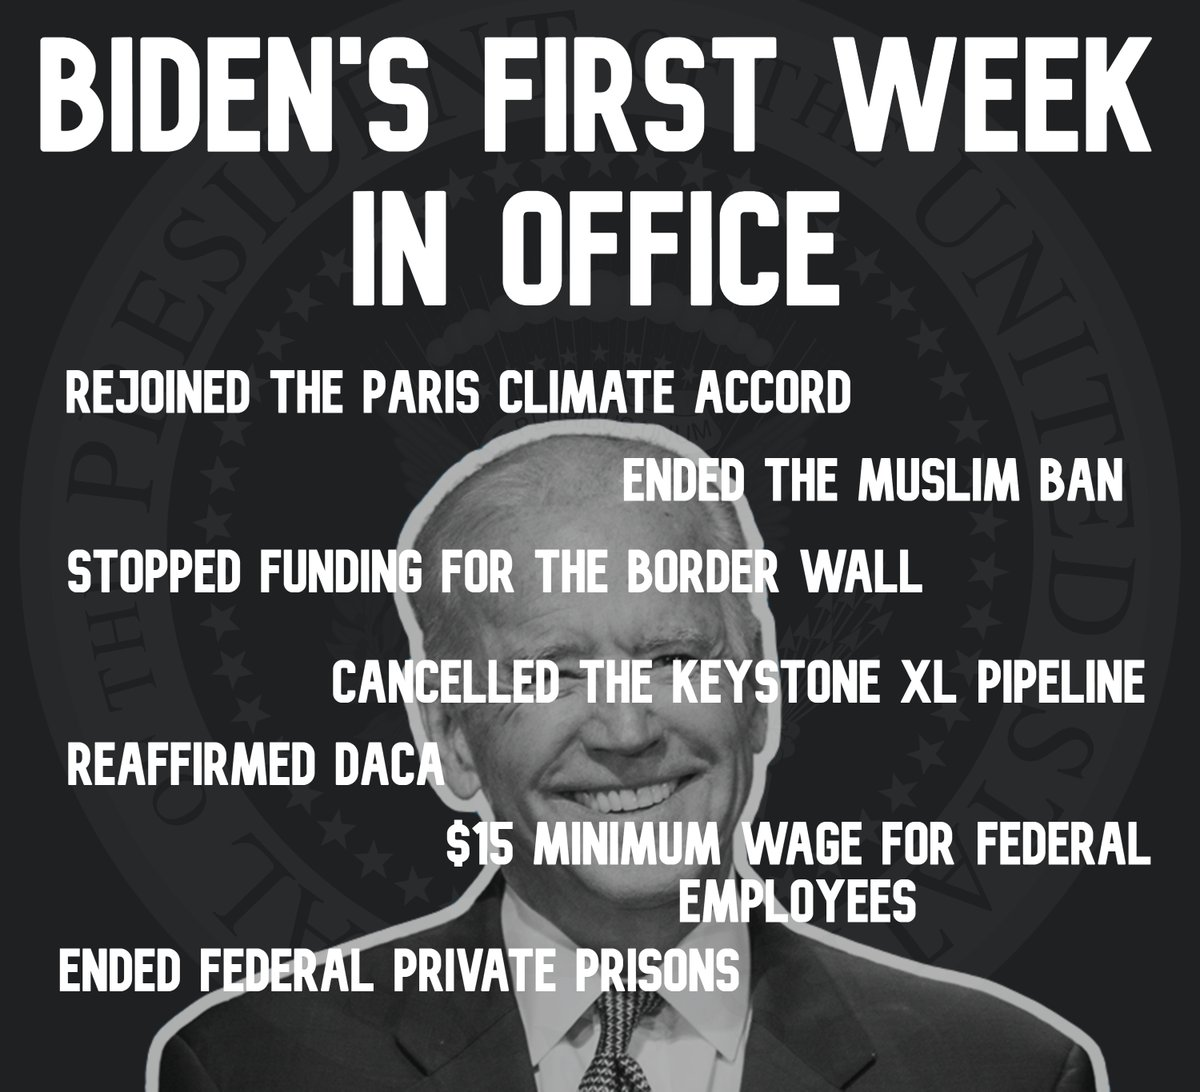 Not a bad first week for @POTUS! America's darkest moments are always followed by it's finest hours, and @JoeBiden is proving that. https://t.co/zAIgFHsNTi